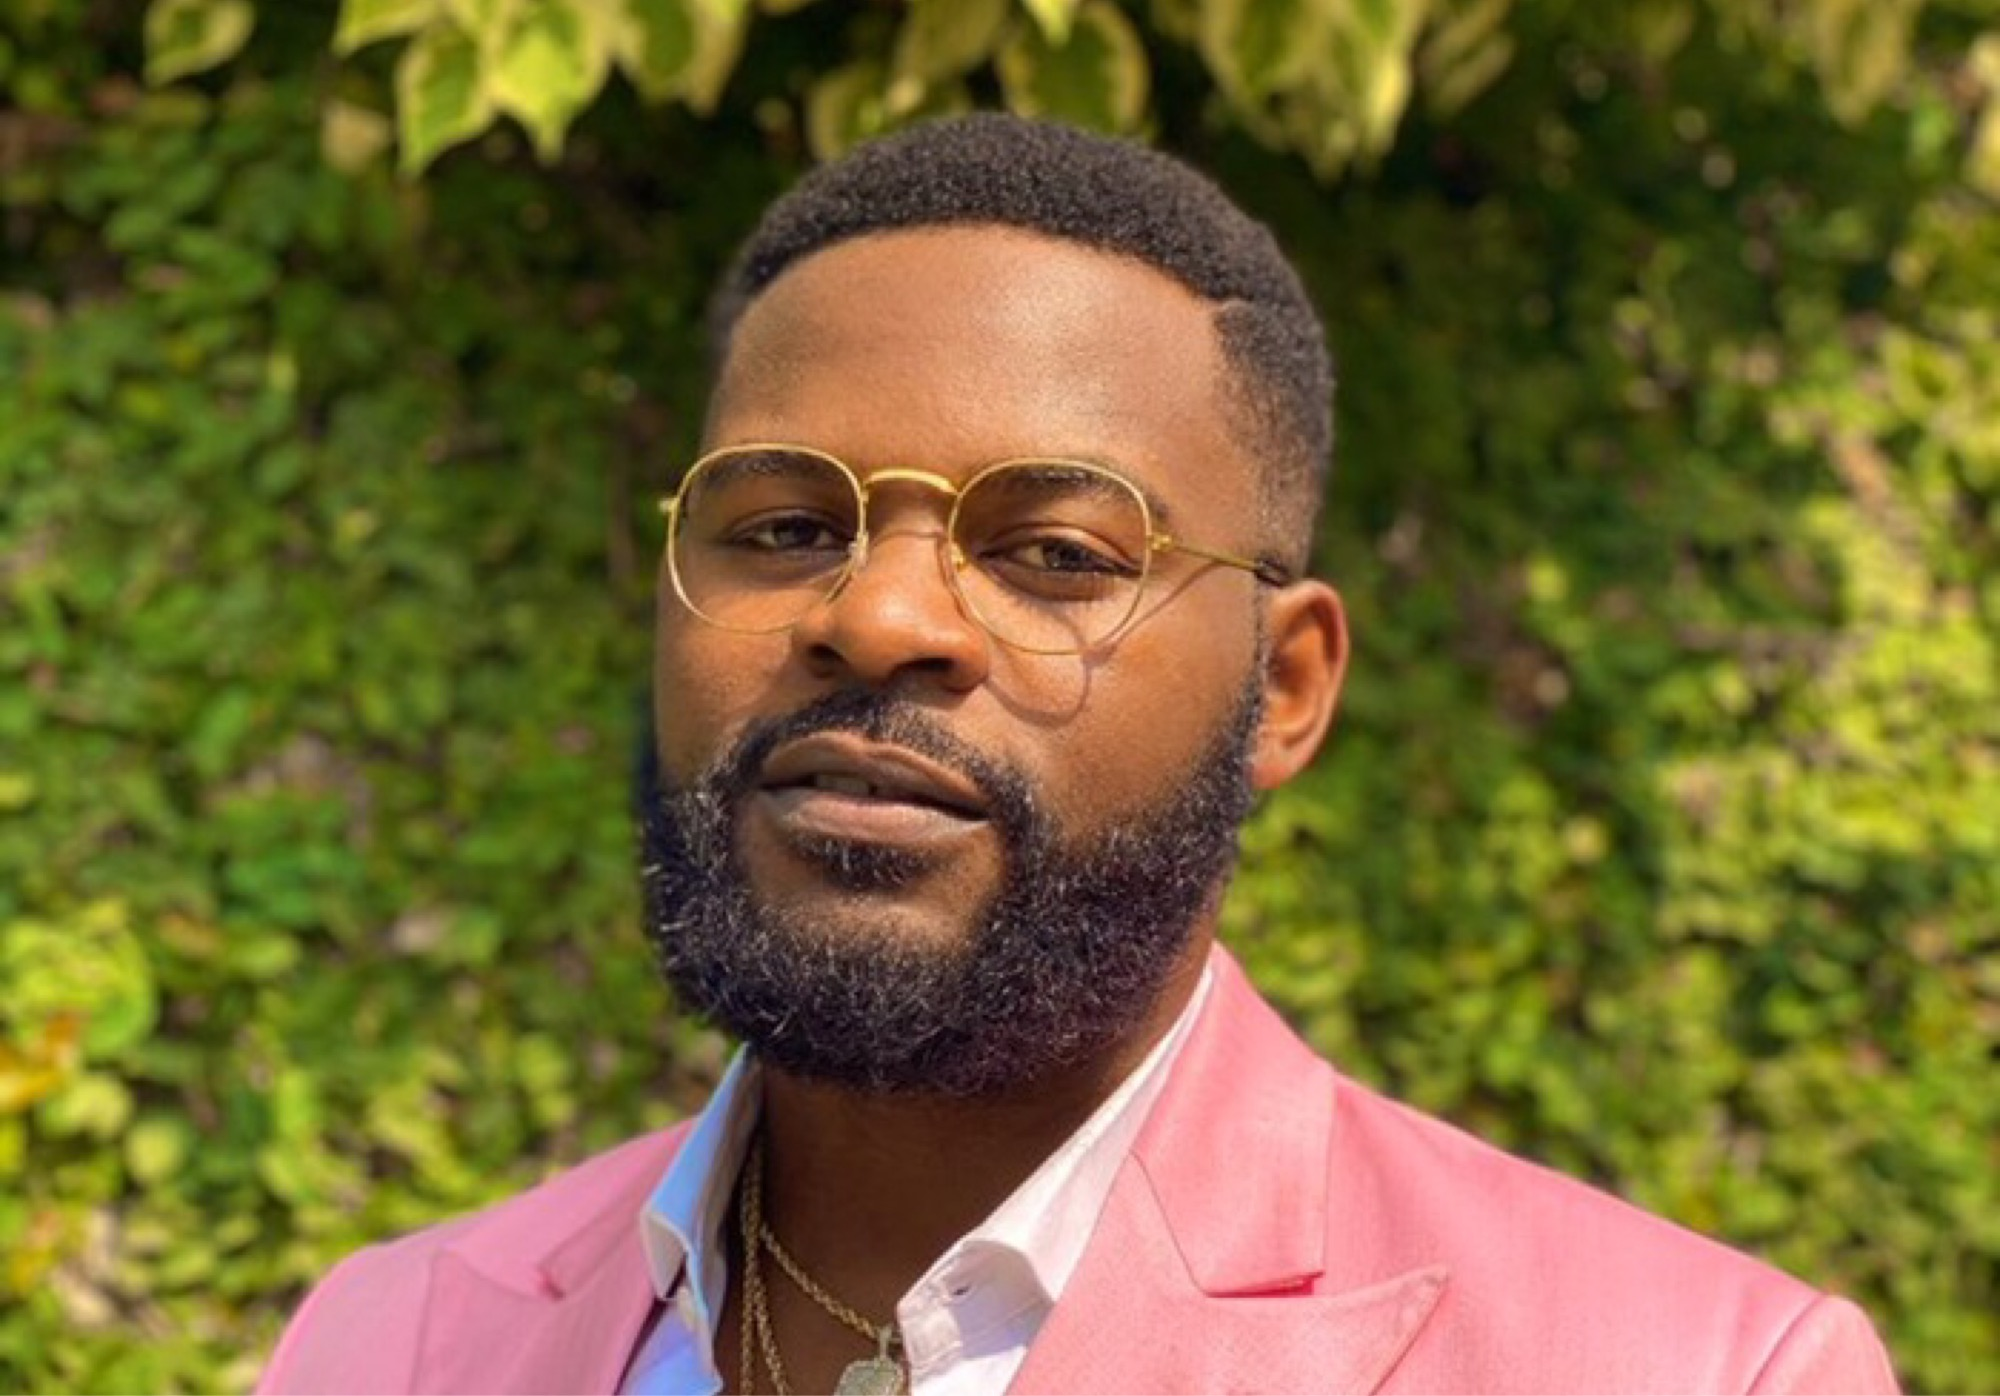 #EndSARS: Falz Unveils 'The Conversation' As A Way Forward